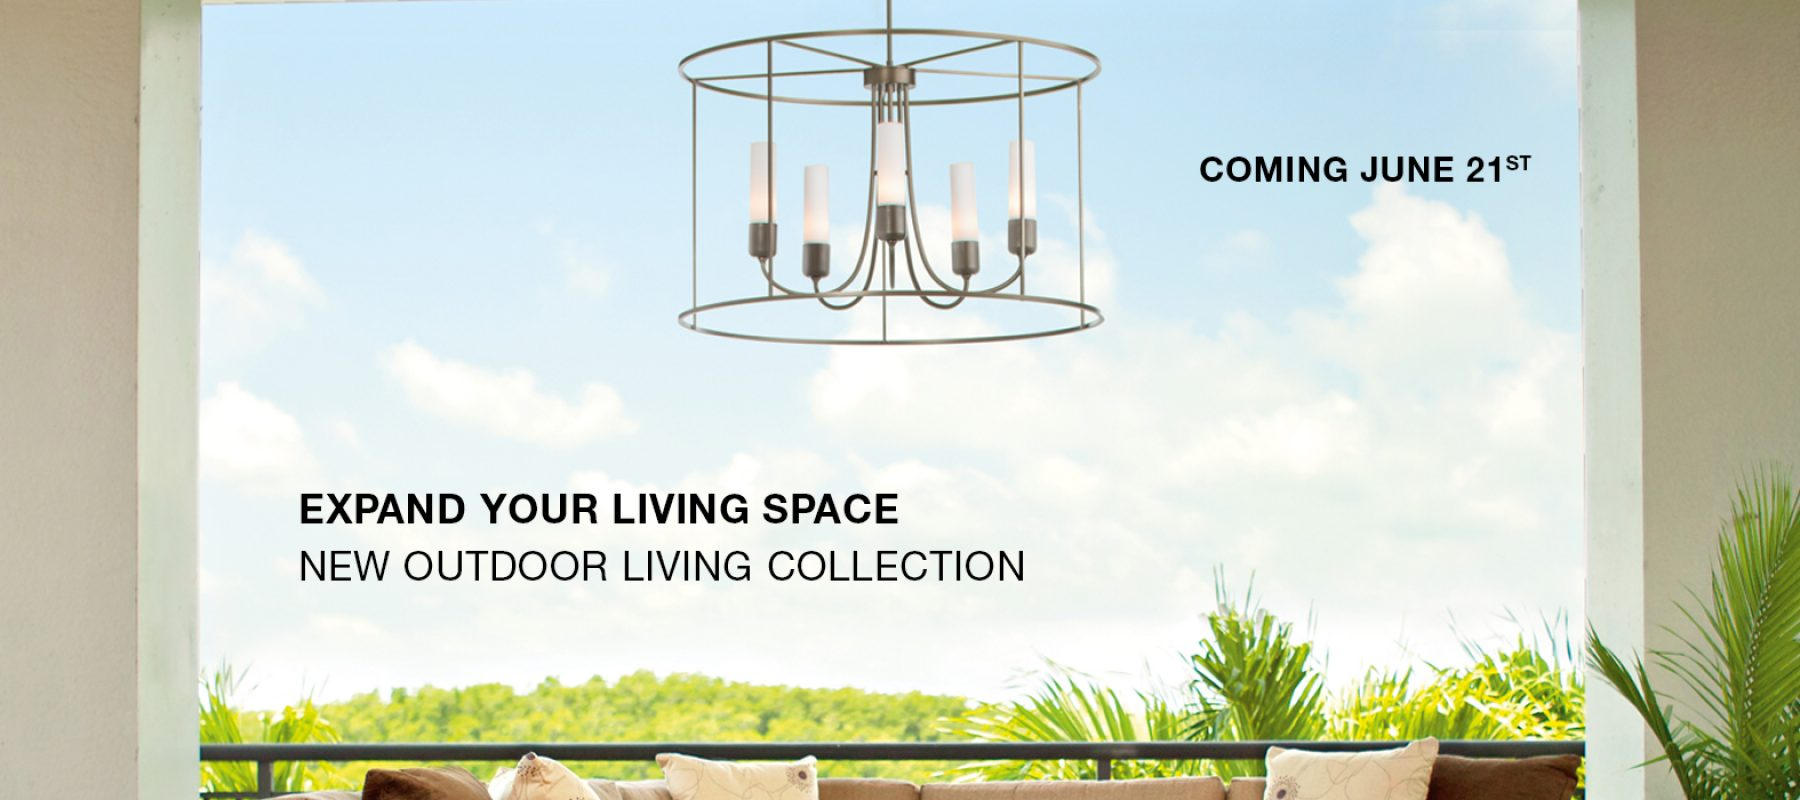 New Outdoor Living Collection from Hubbardton Forge